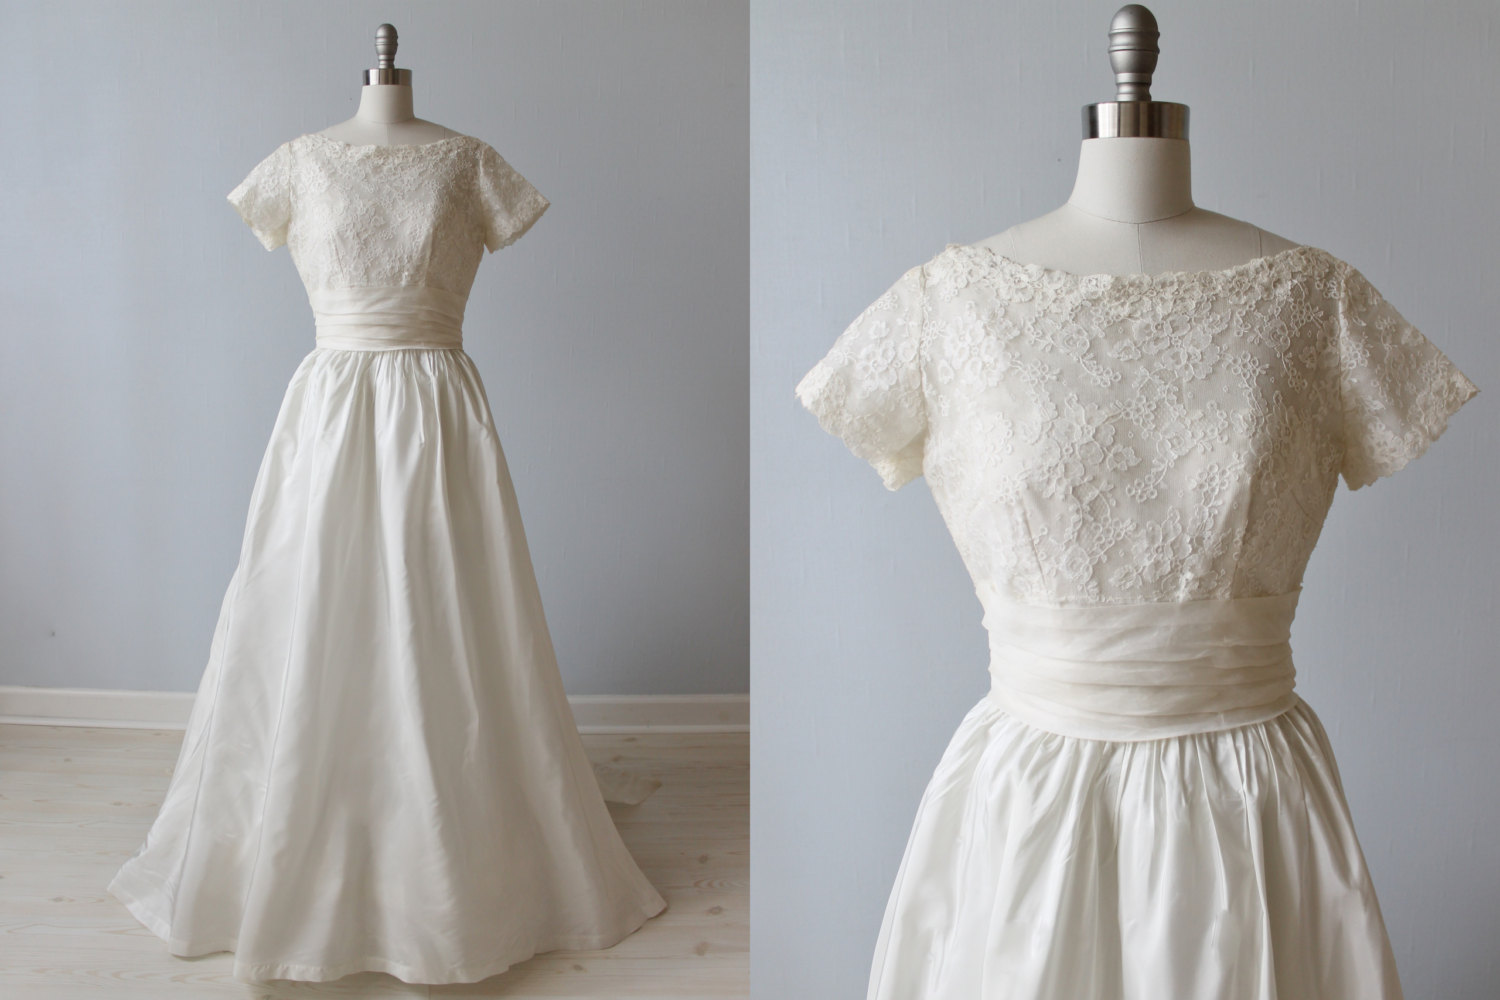 Vintage Wedding Dress - 1950s Priscilla of Boston